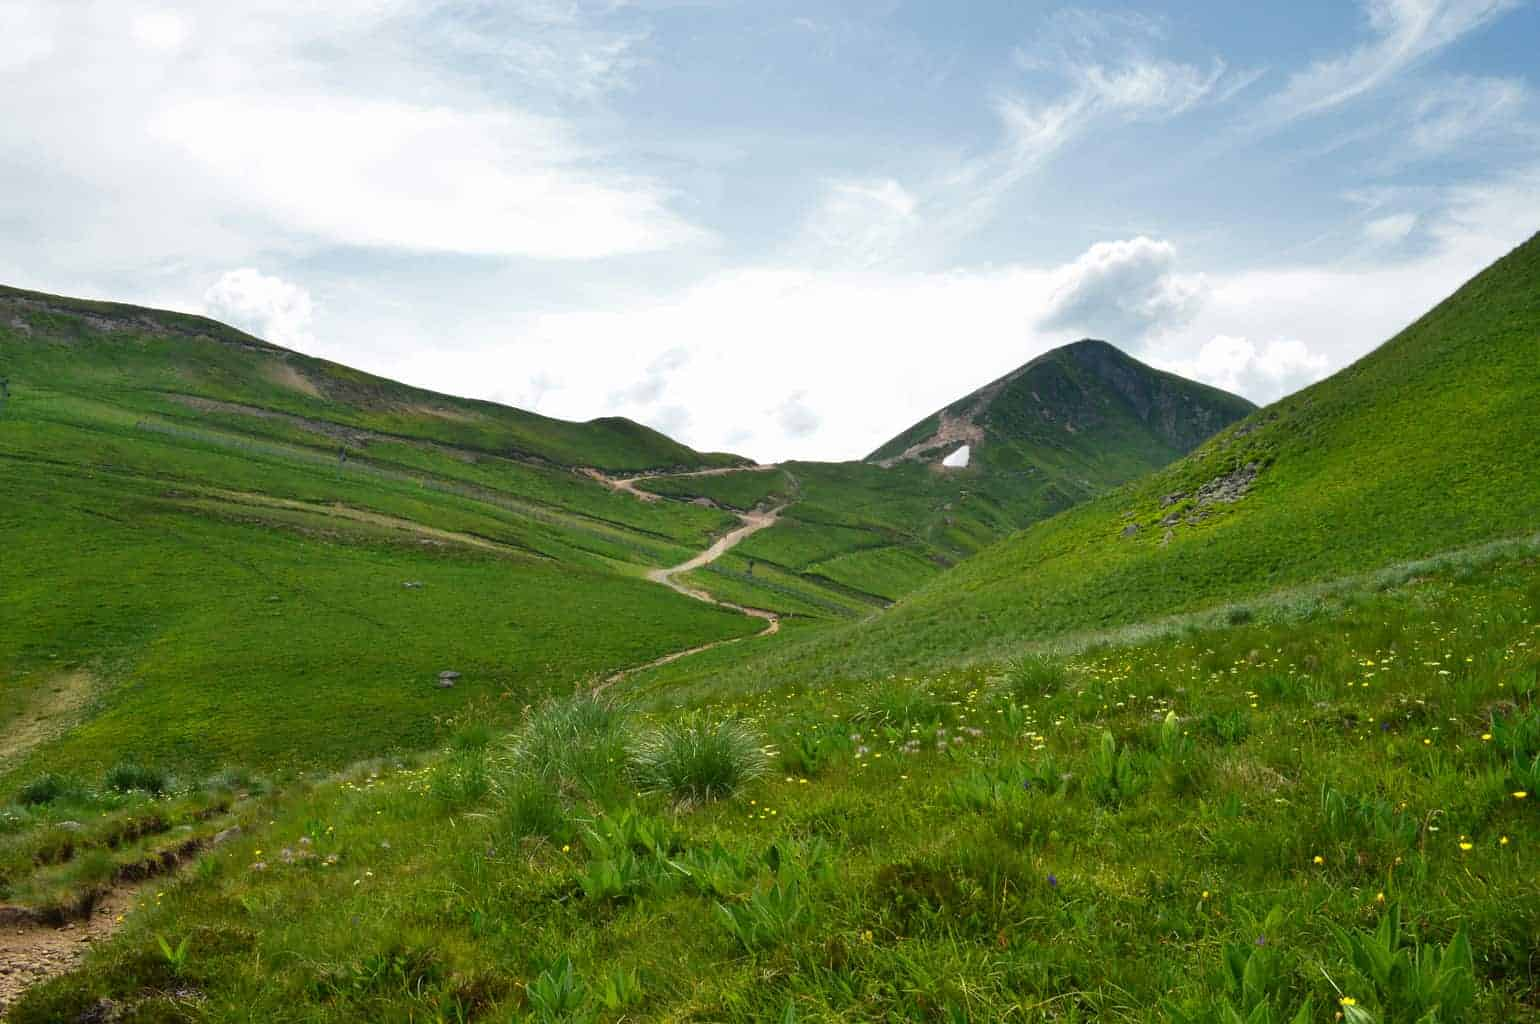 The Massif de Sancy is one of the best hiking trails in Auvergne, France.